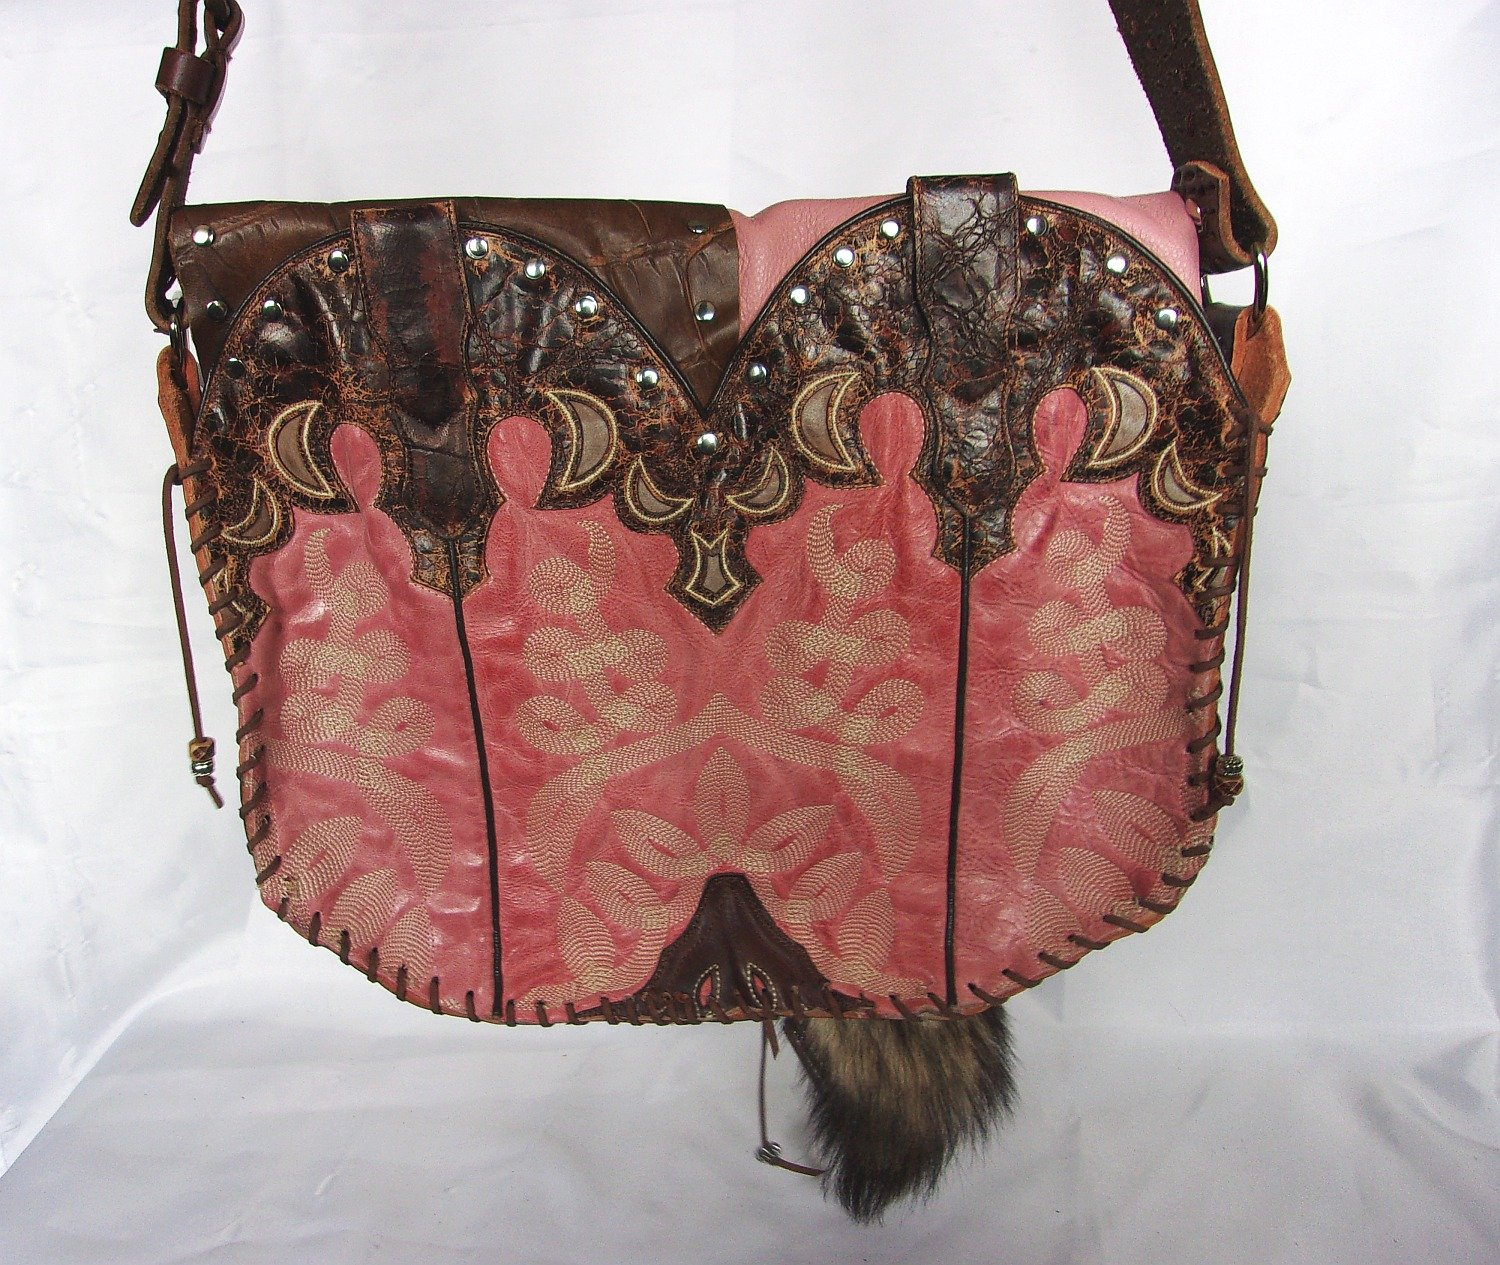 Hand-Painted Flap Top Bag FX12 - Cowboy Boot Purses by Chris Thompson for Distinctive Western Fashion